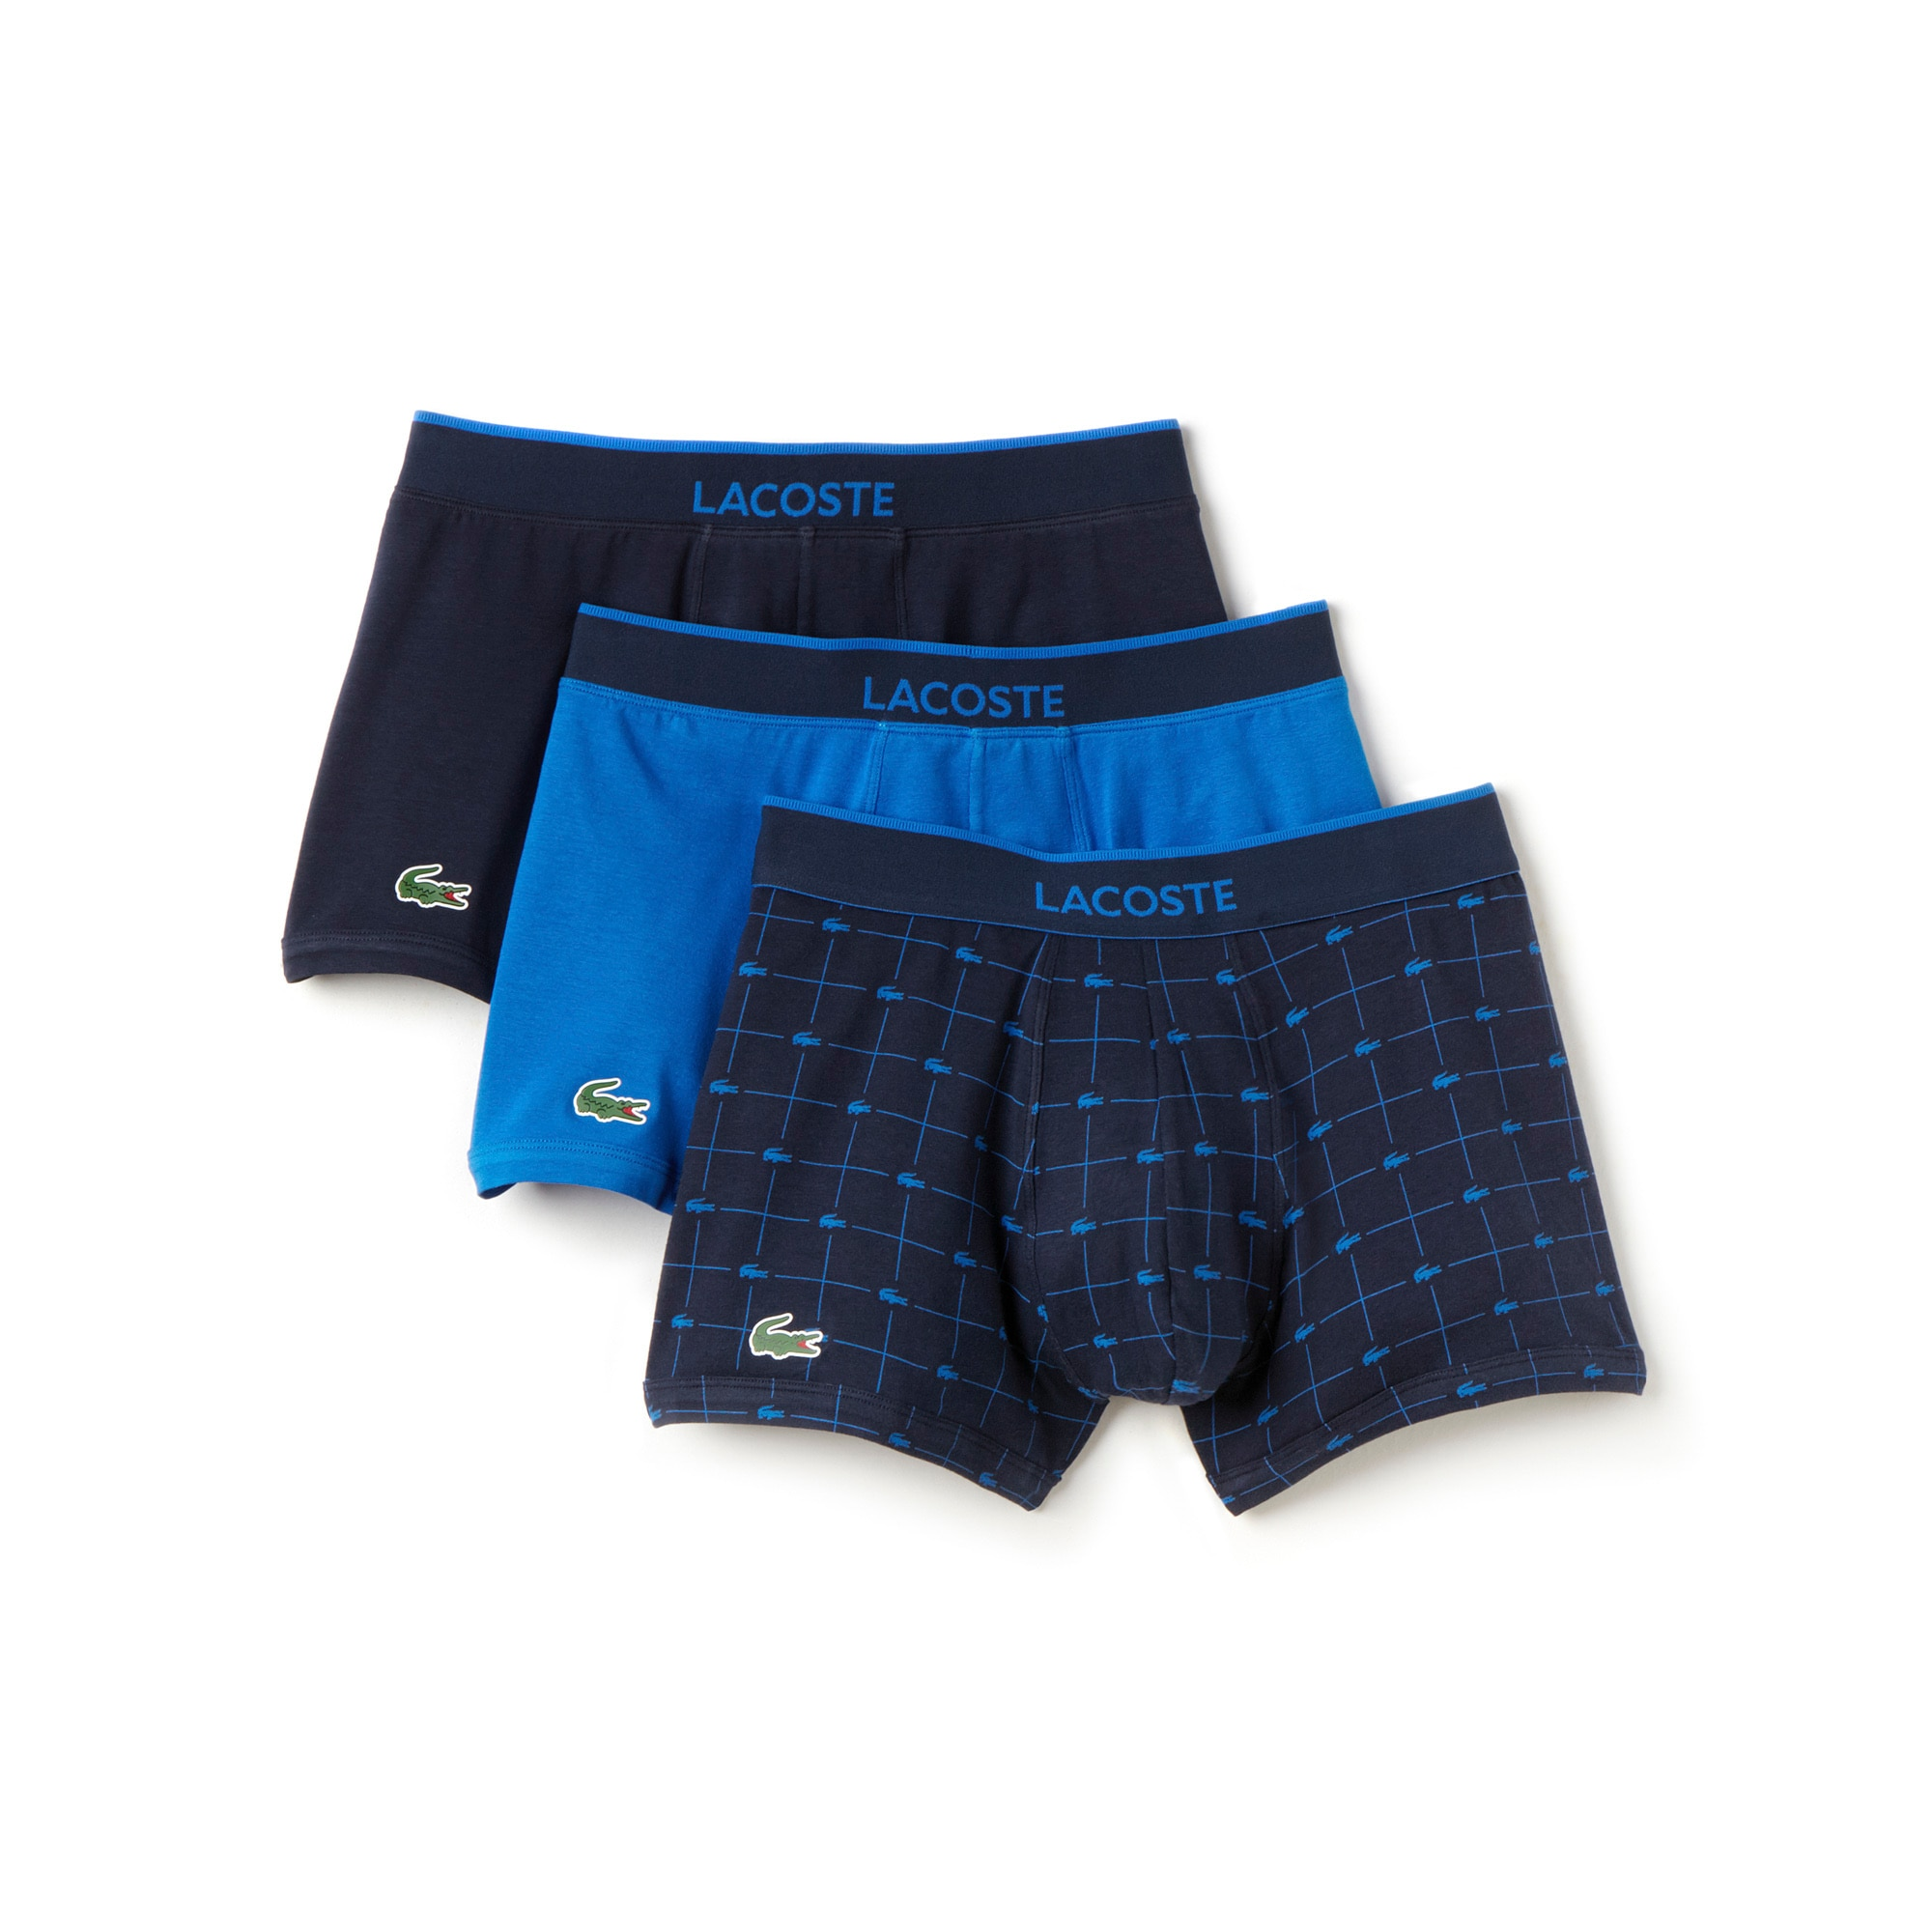 Men's 3 Pack Signature Print Cotton Stretch Trunk